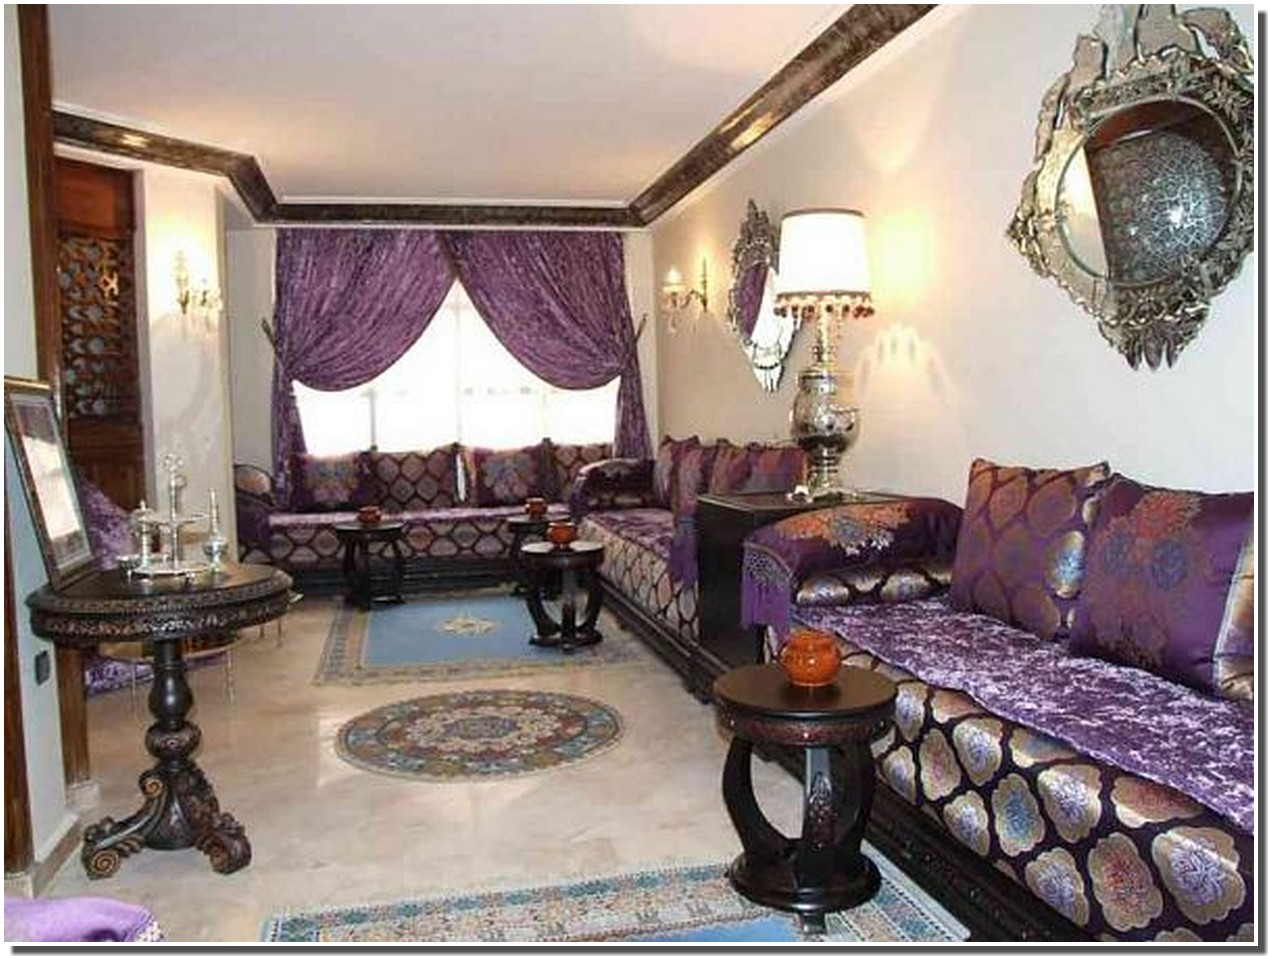 Salon Arabe Nassima Home Salon Arabe